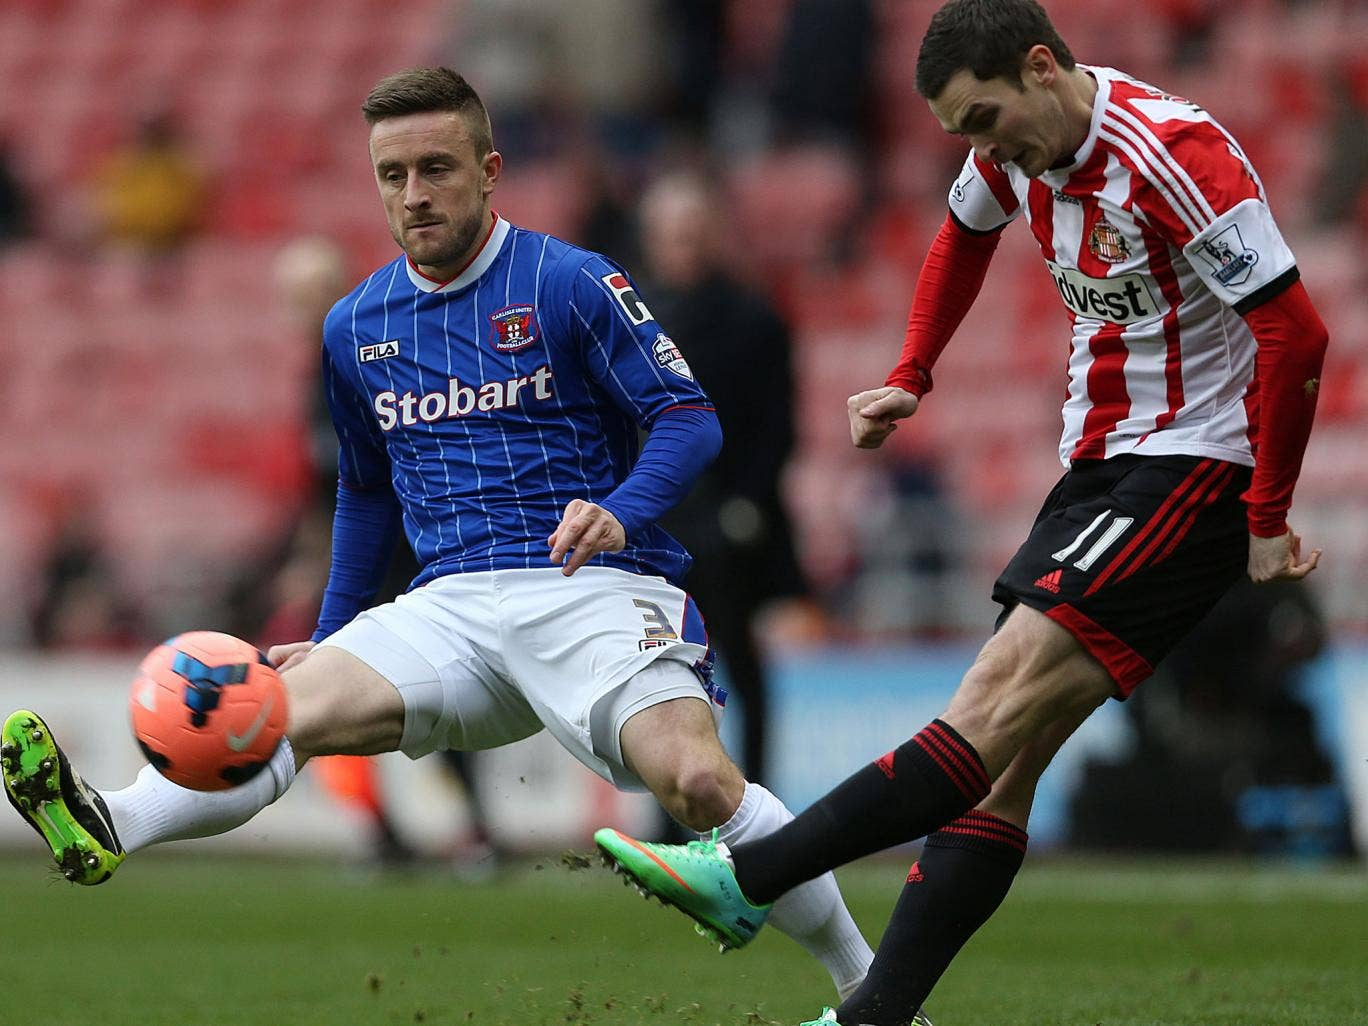 Carlisle United's Matty Robson (left) vies with Sunderland's  Adam Johnson in the FA Cup clash on Sunday